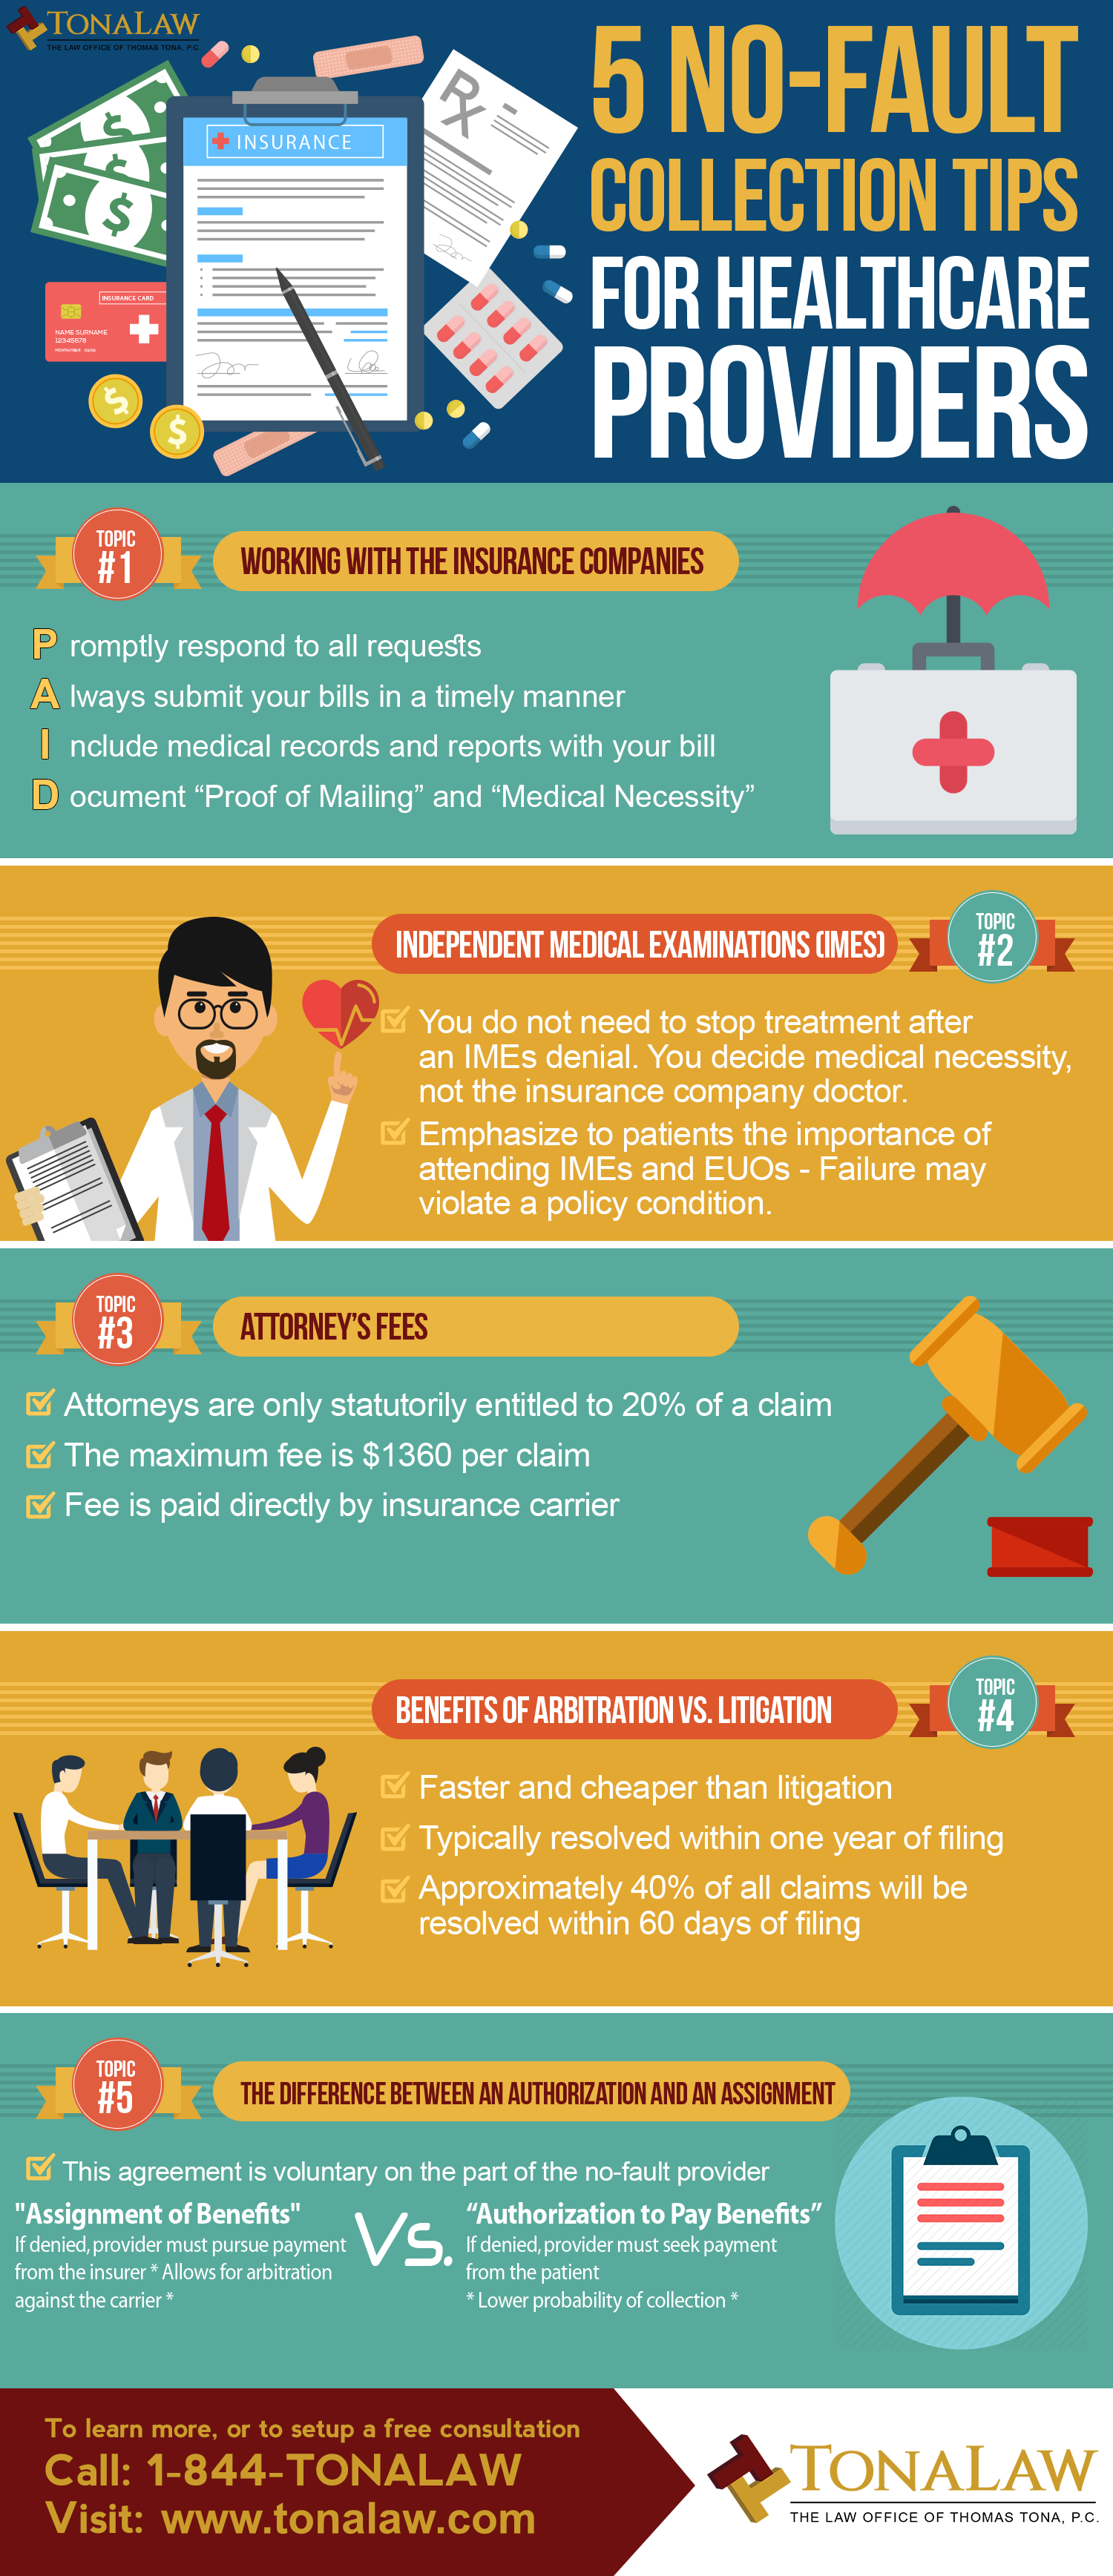 5 No-Fault Collection Tips for Healthcare Providers Infographic